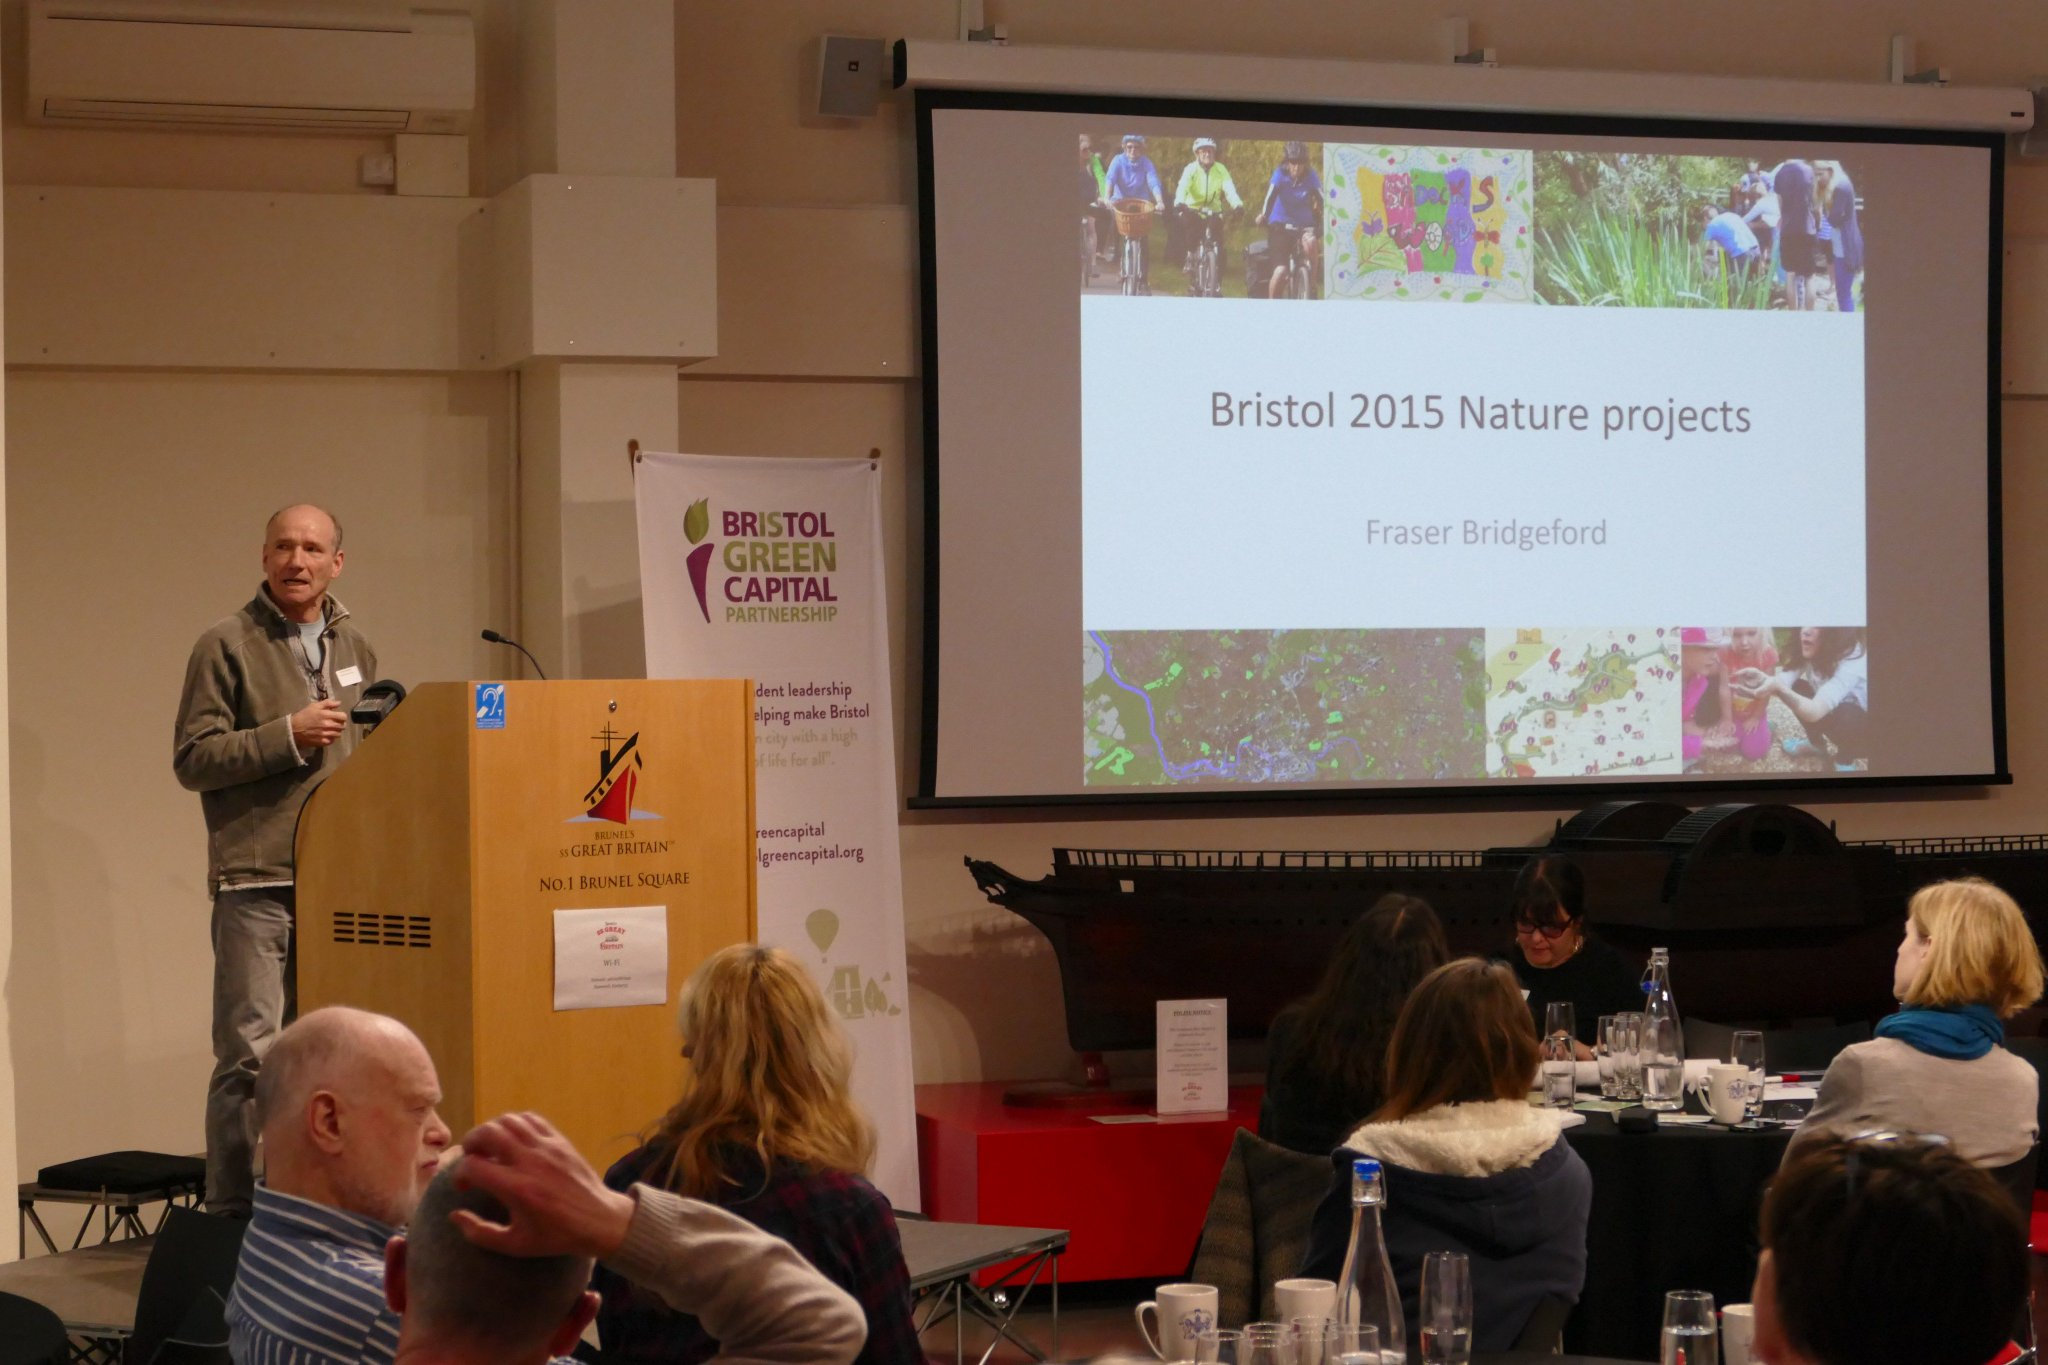 Fraser Bridgeford demonstrating some of the positive impact to #nature projects from Bristol's Green Capital Year in 2015. #BGCPGathering https://t.co/50ZvjVPo5X